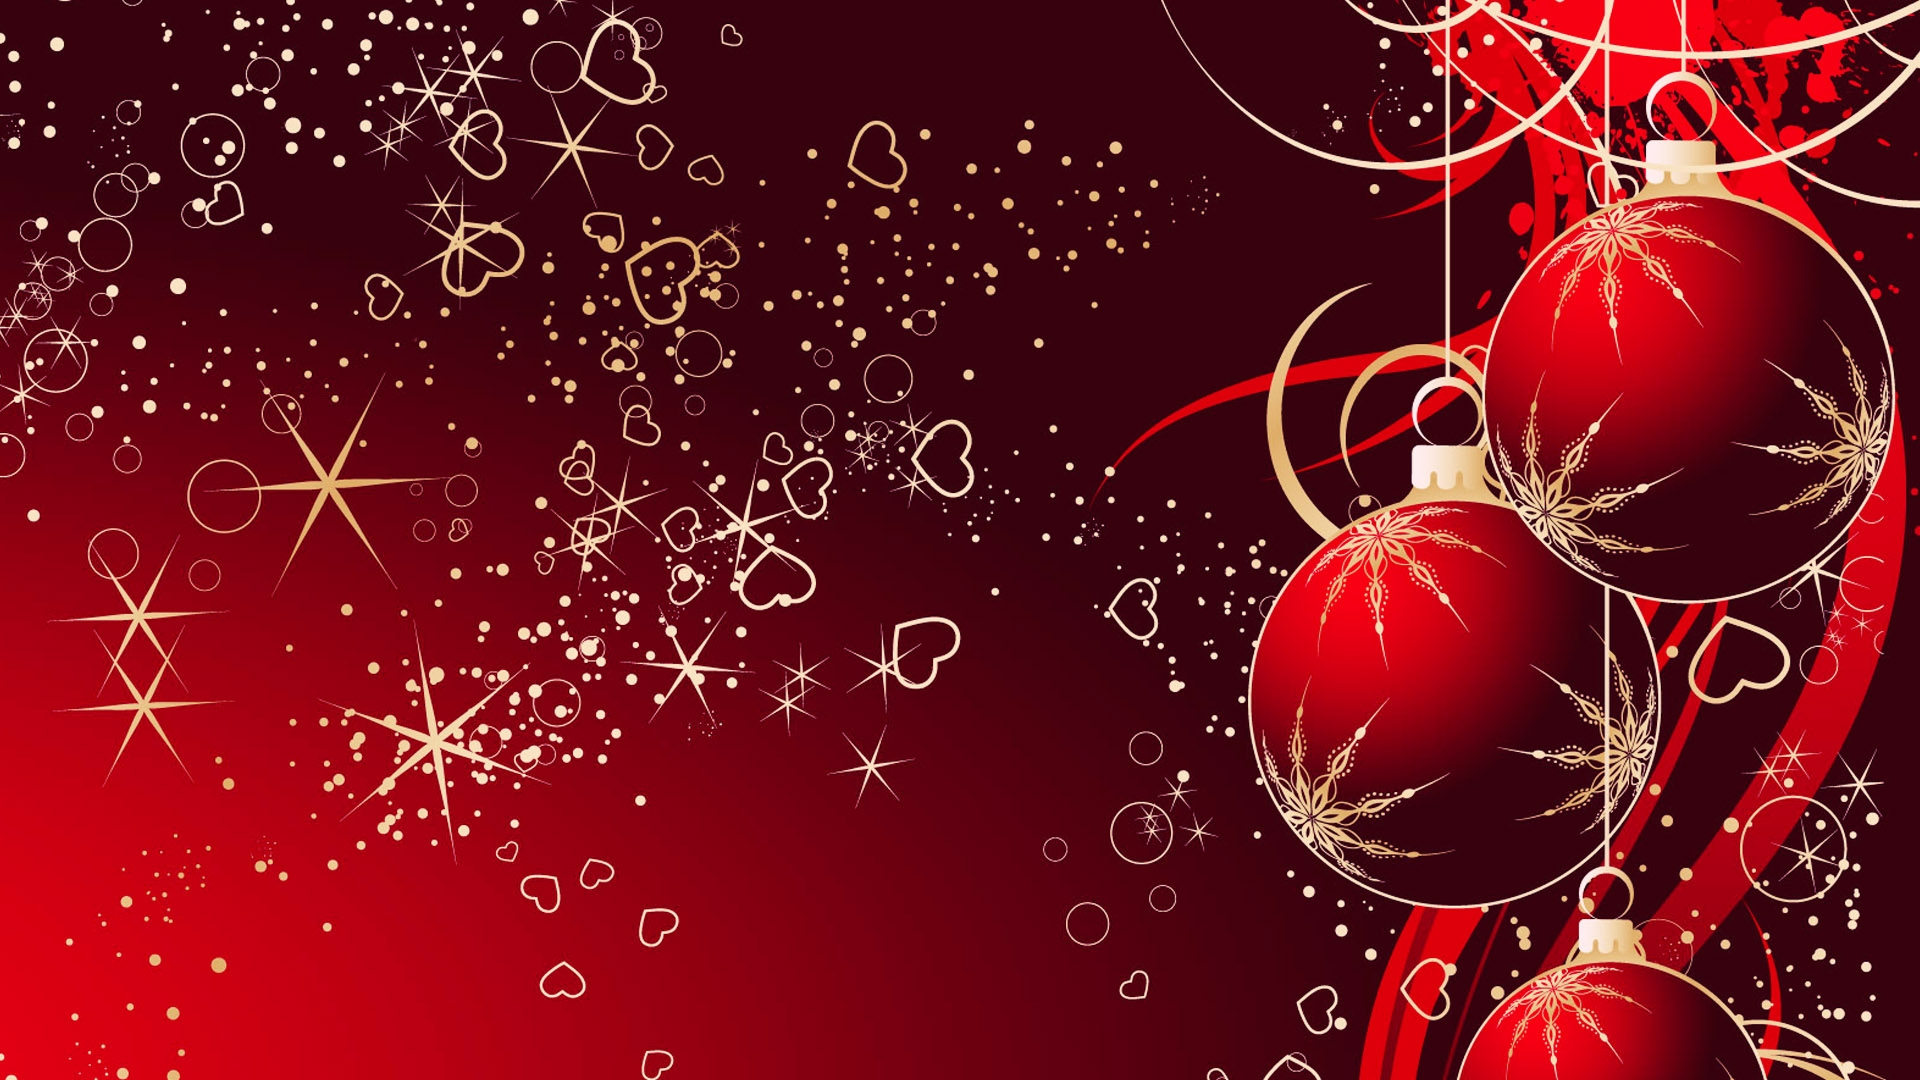 Free Download}* Merry Christmas Images Wallpapers Photos HD Pics